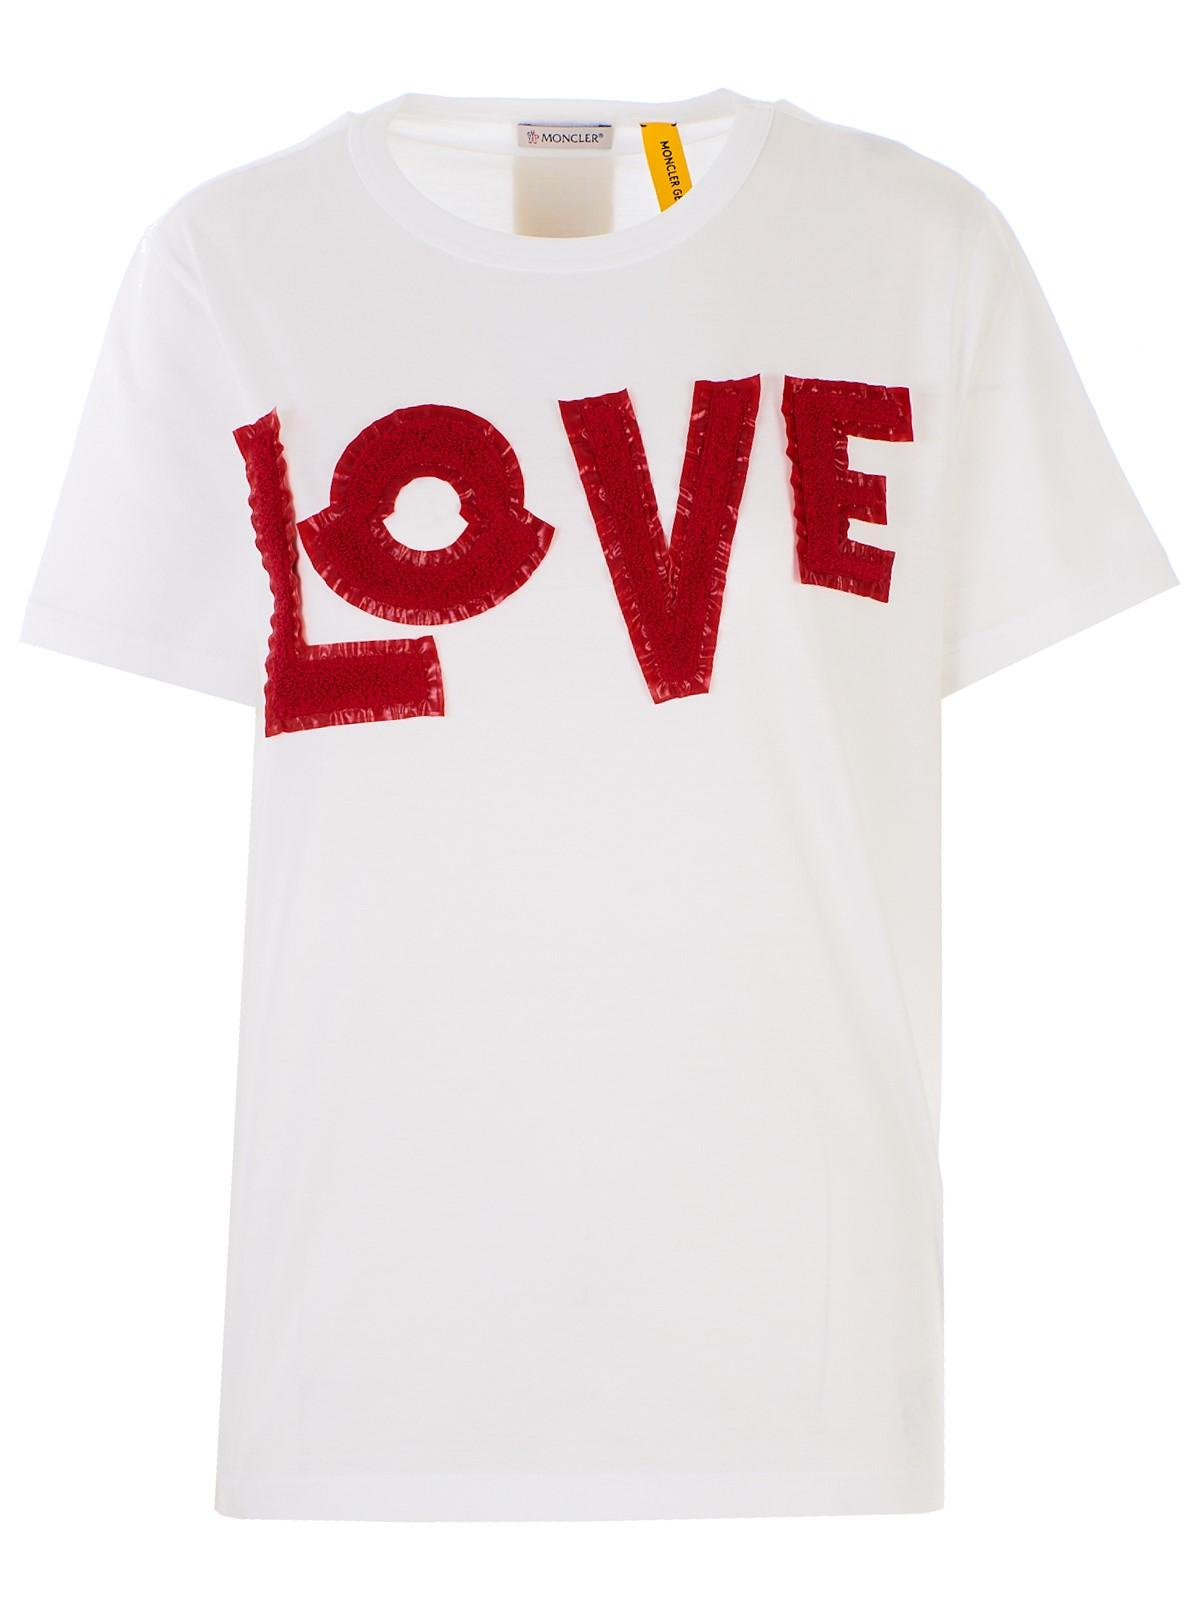 1b07851e Lyst - Moncler White T-shirt in White - Save 25%